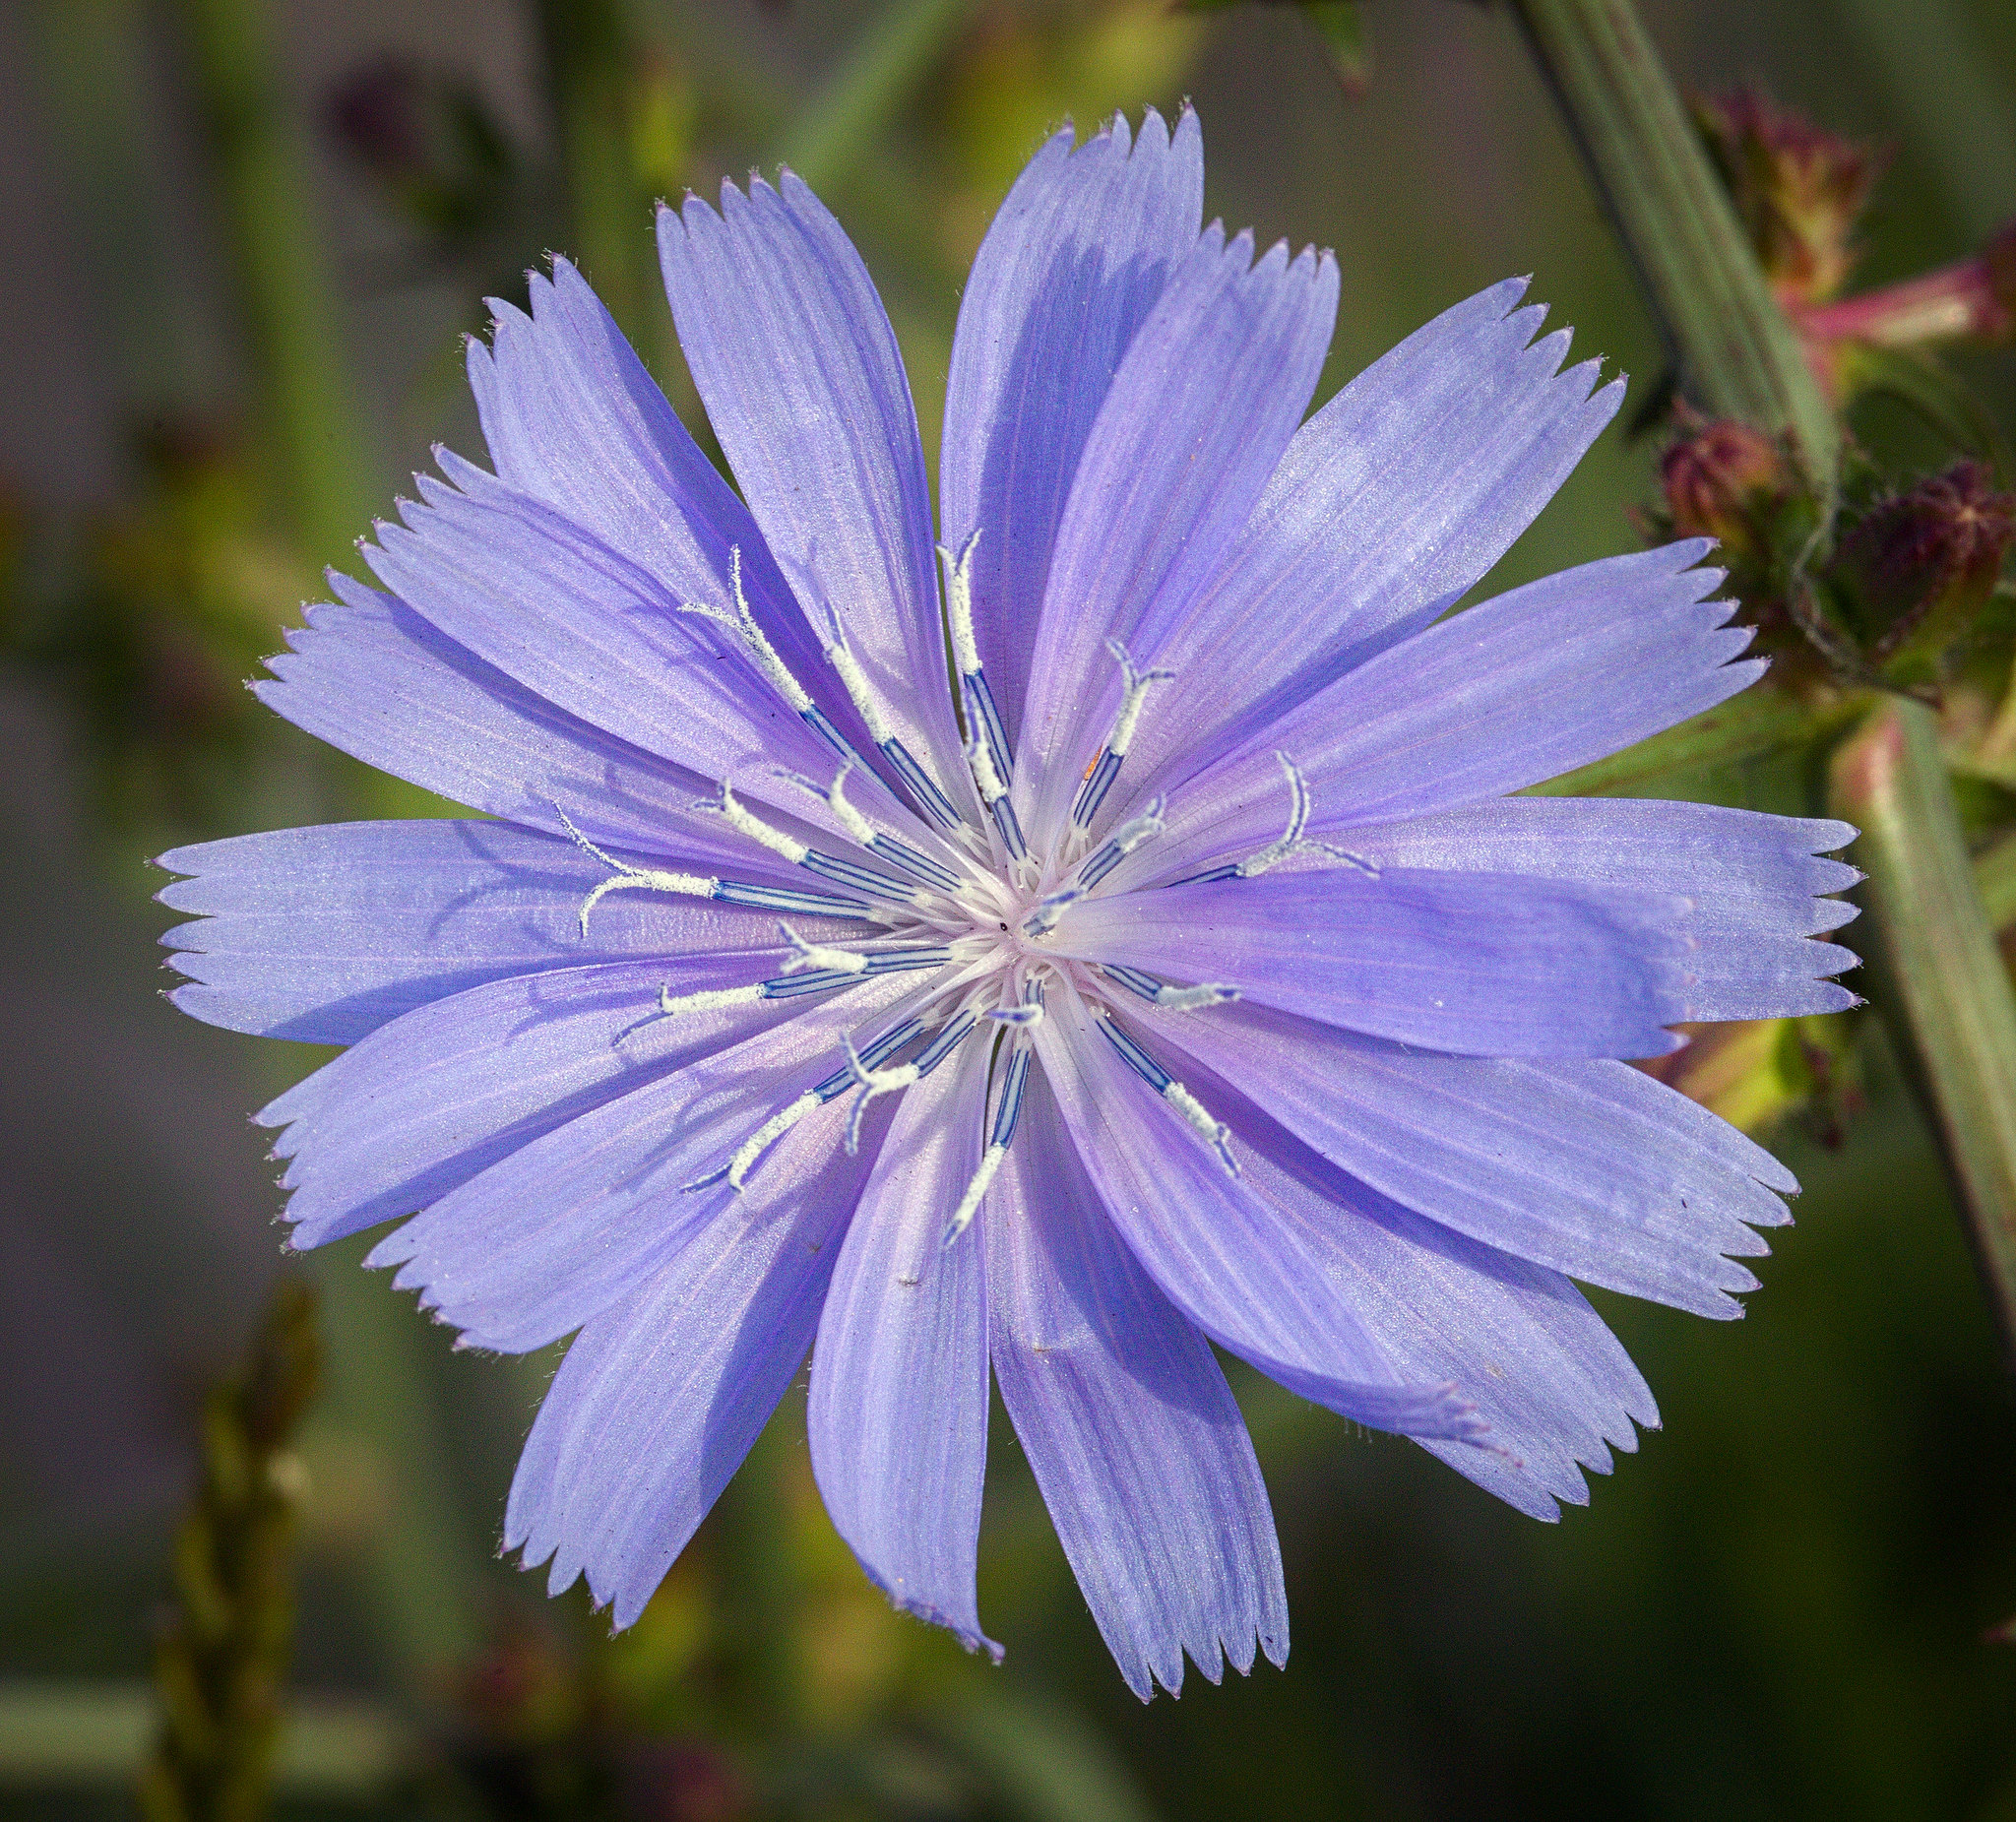 The purplish, periwinkle flower of common chicory.